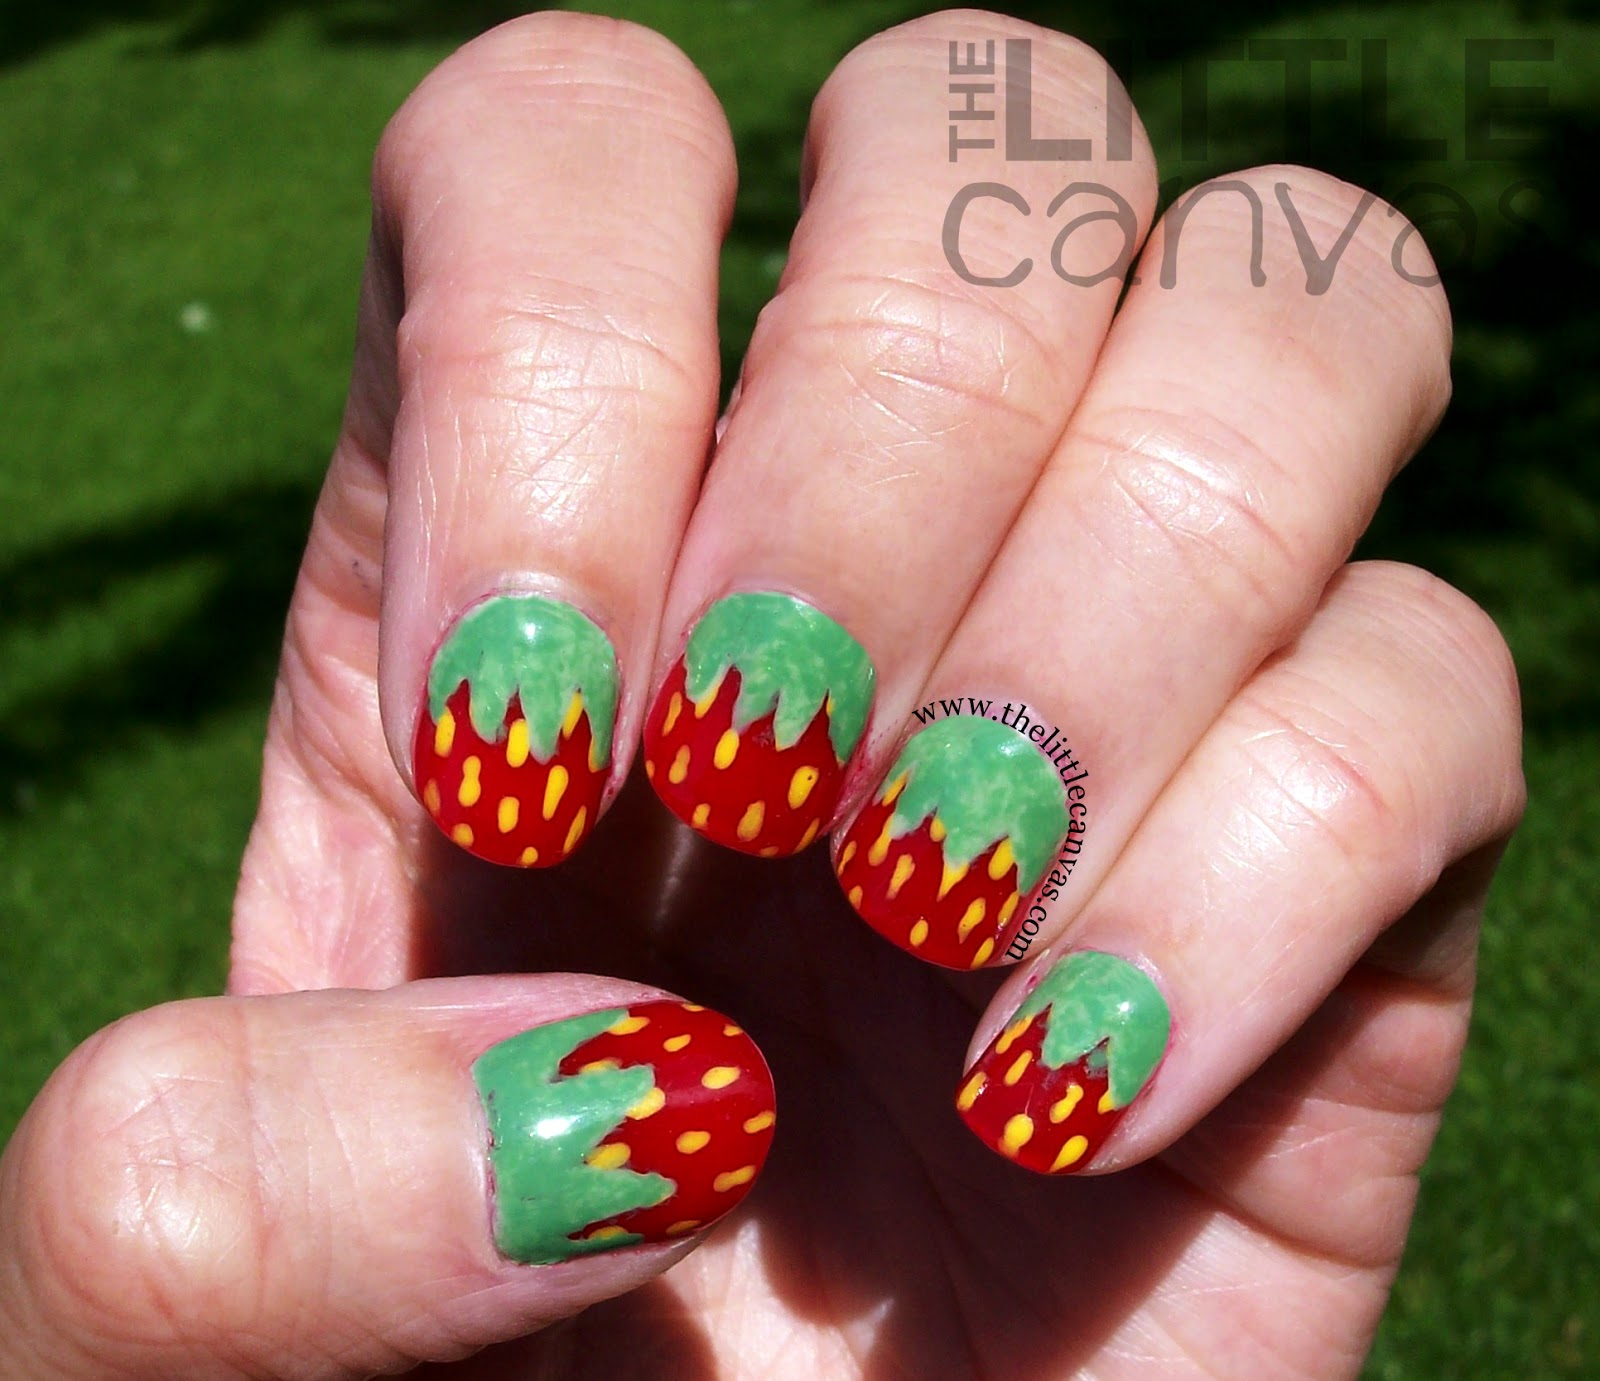 Toe nail designs strawberry cute strawberry nail art designs d strawberry nail art tutorial view images prinsesfo Image collections